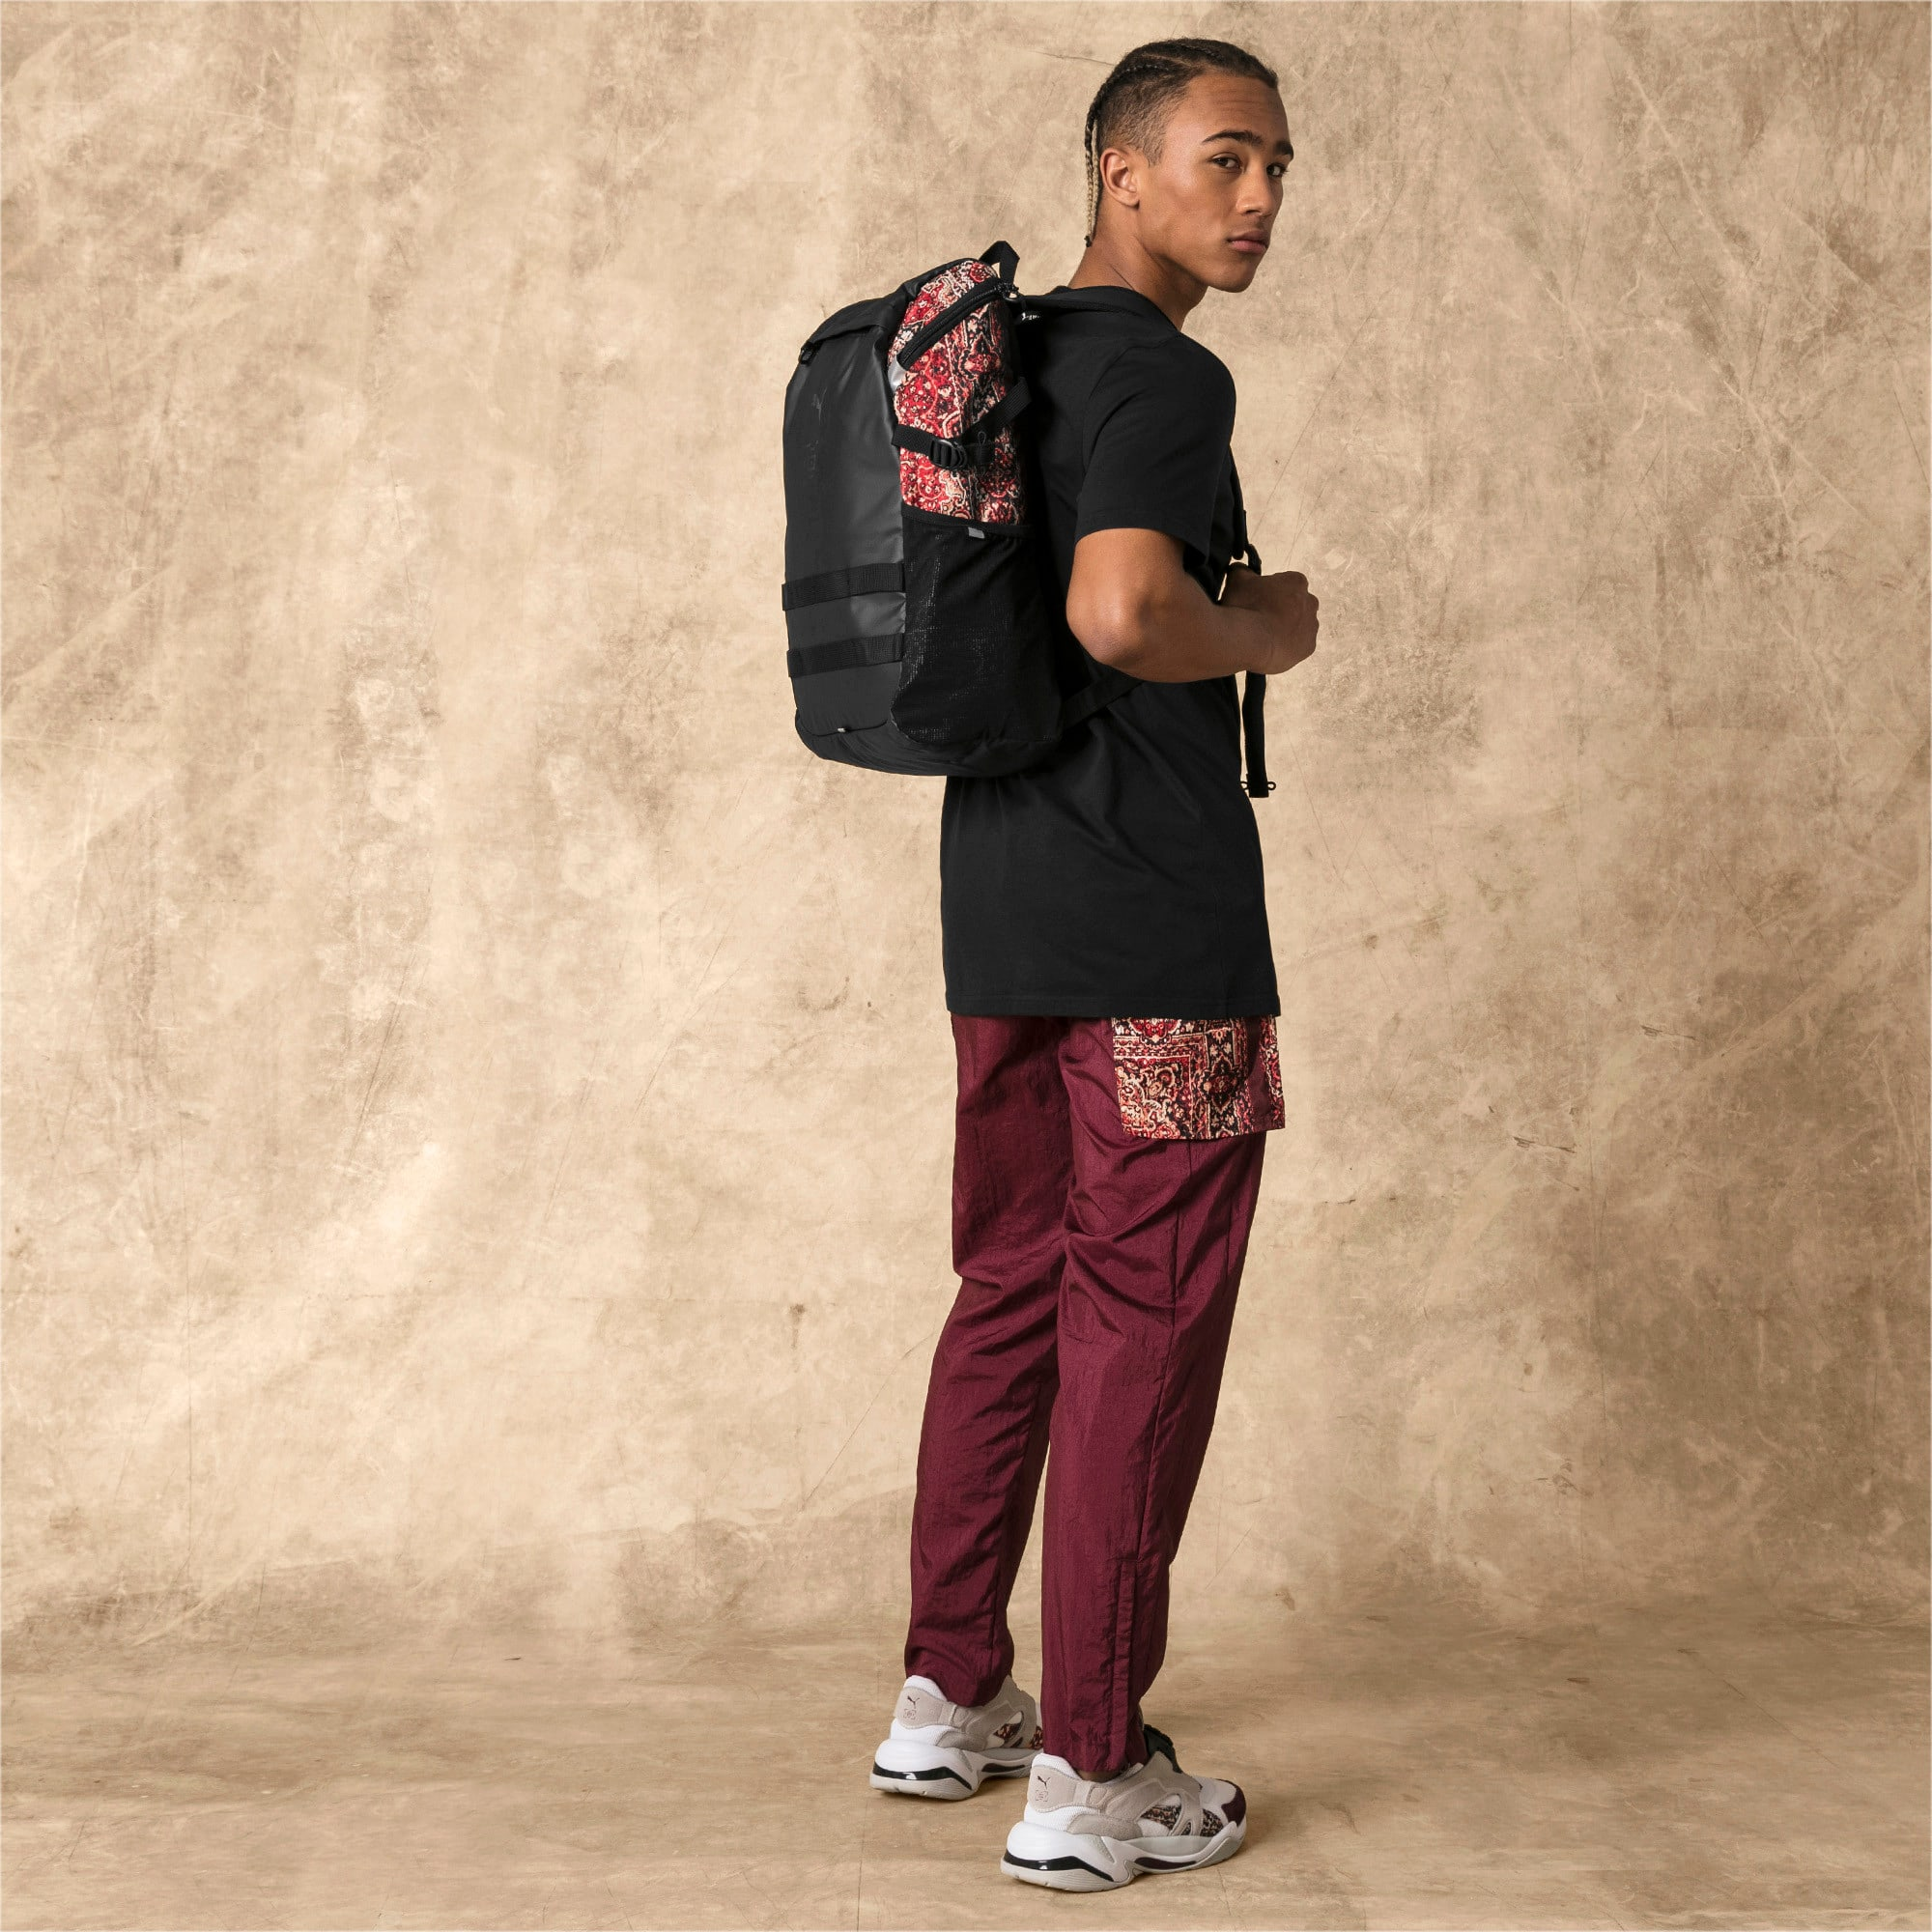 Thumbnail 2 of PUMA x LES BENJAMINS Backpack, Puma Black-AOP, medium